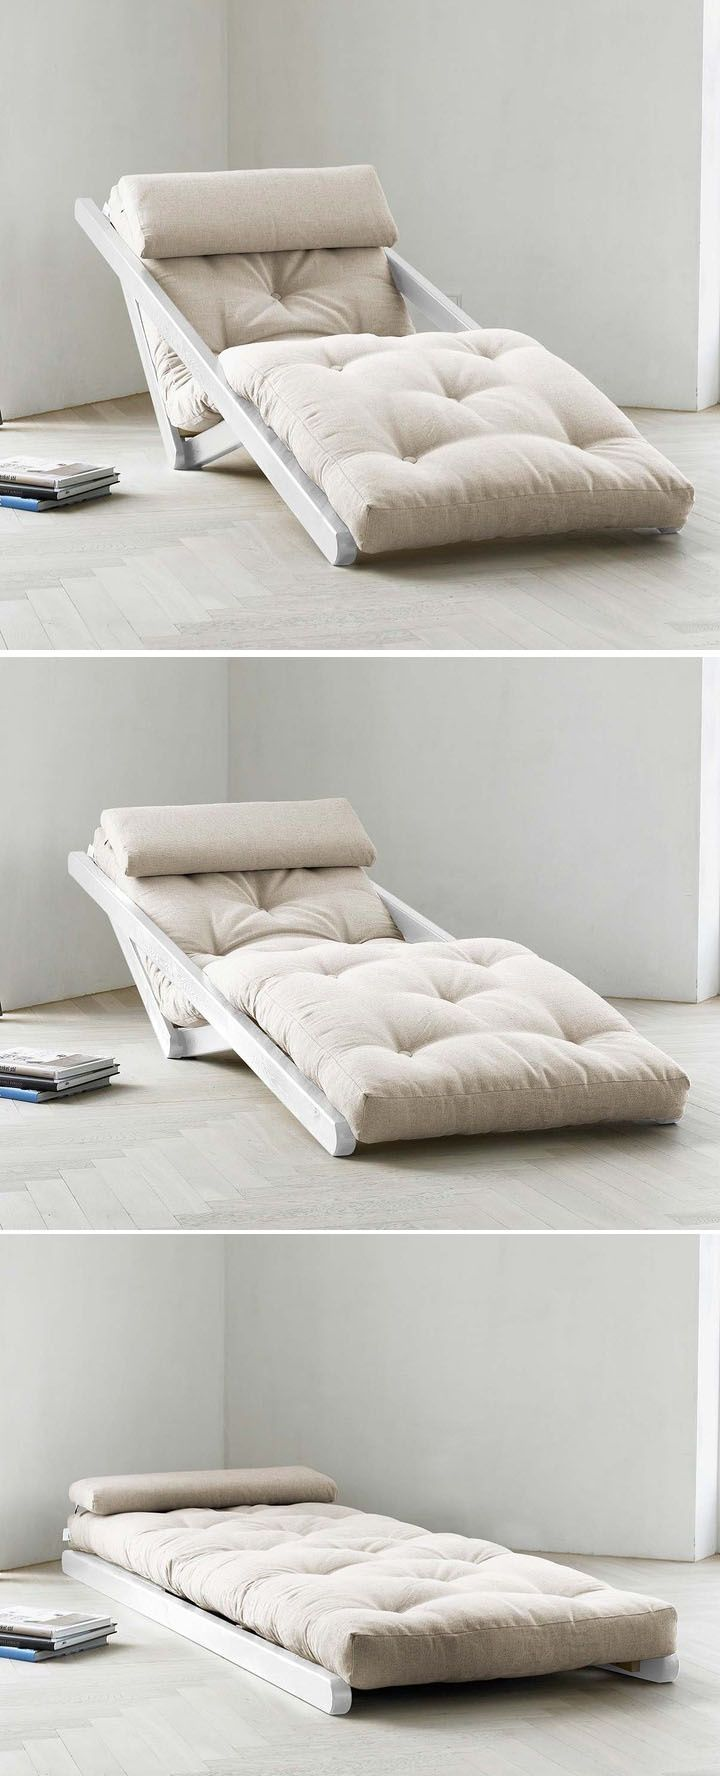 Chair-bed I want this!!!